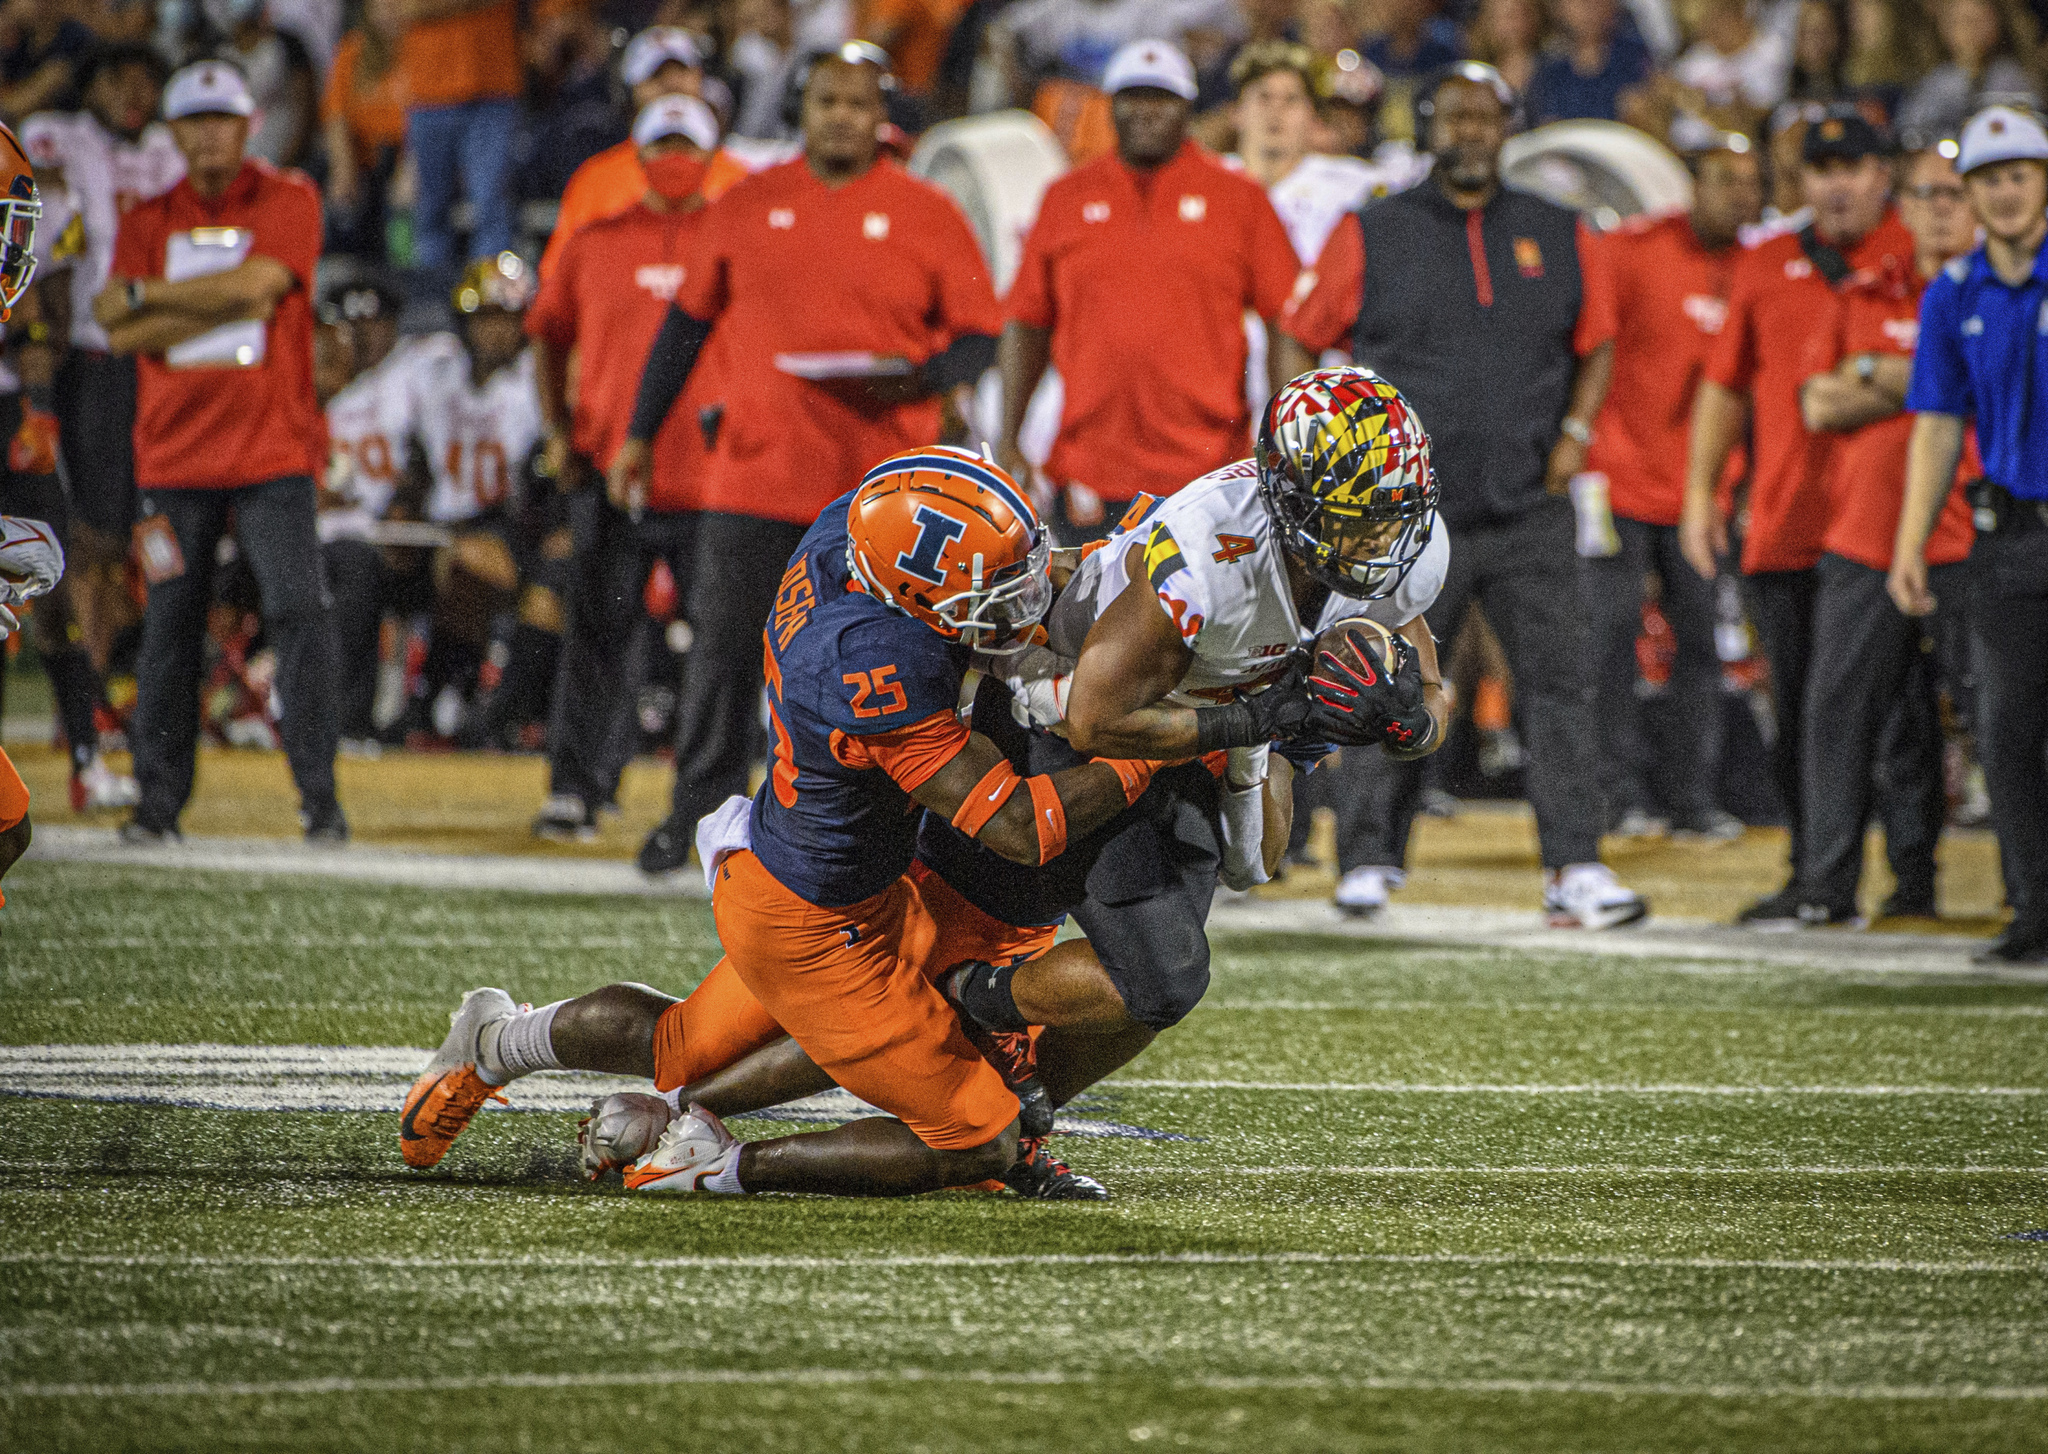 Five Minutes From Hell Dooms Illini in Crushing Loss